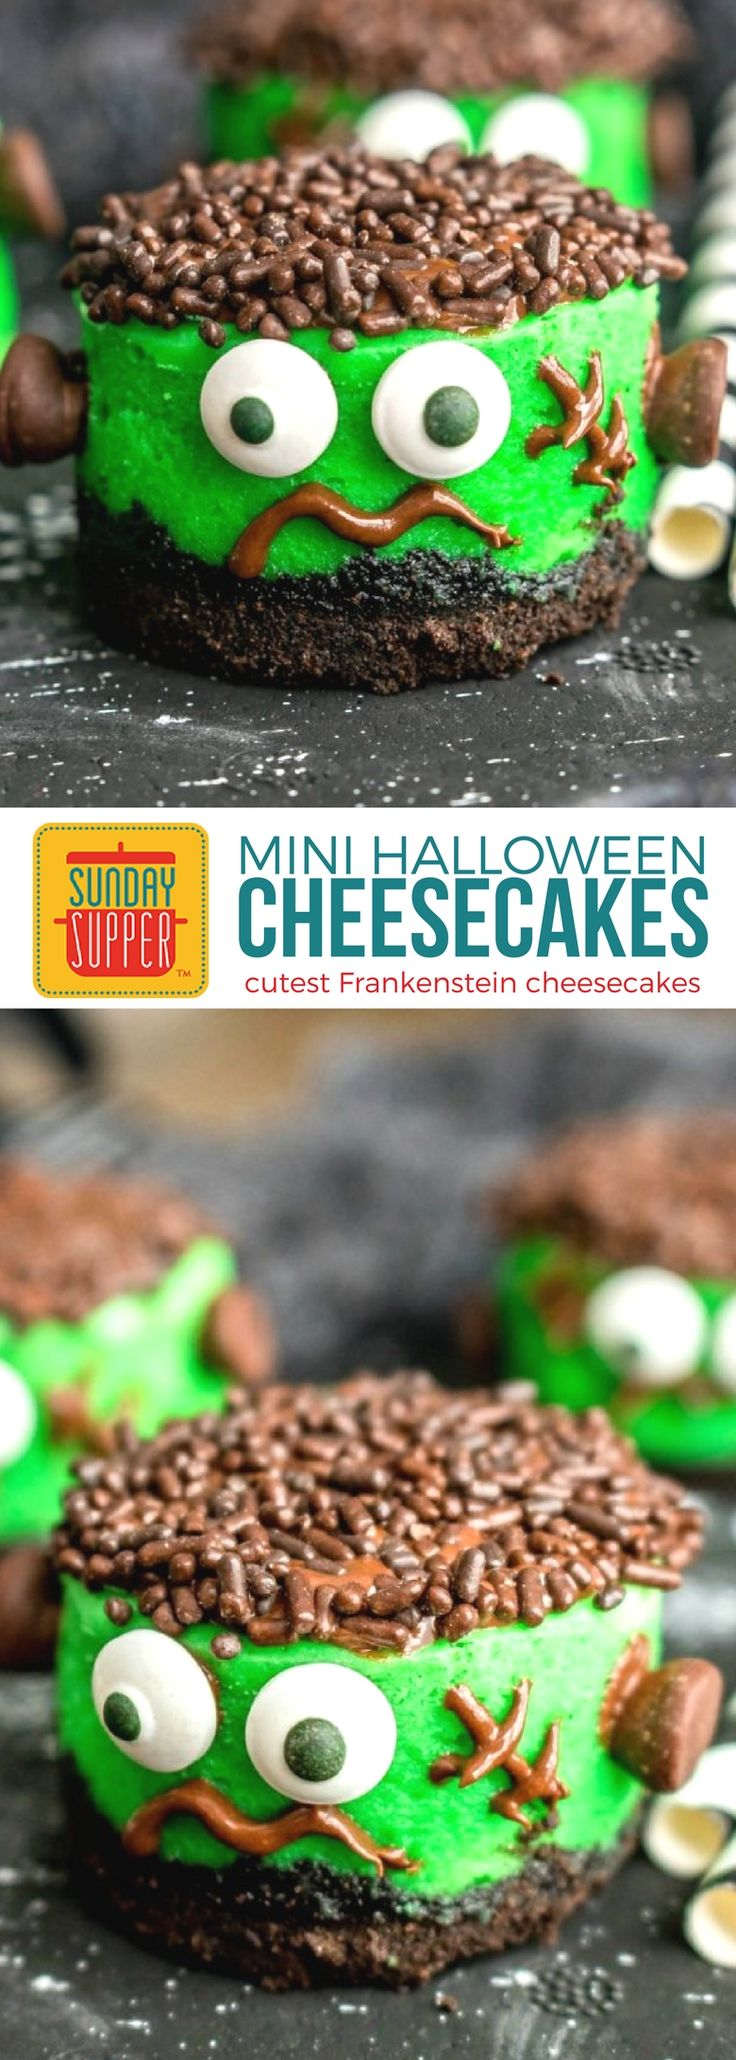 A Halloween dessert recipe you can eat in one bite! These cute Mini Frankenstein Cheesecakes are the perfect Halloween finger food for your Halloween party! Decorate with food for your Halloween part with a 'crave'yard dessert table. Along with the recipe for these adorable Halloween cheesecakes, we share decorating tips and other Halloween food ideas! #SundaySupper #HalloweenFingerFoods #HalloweenRecipes